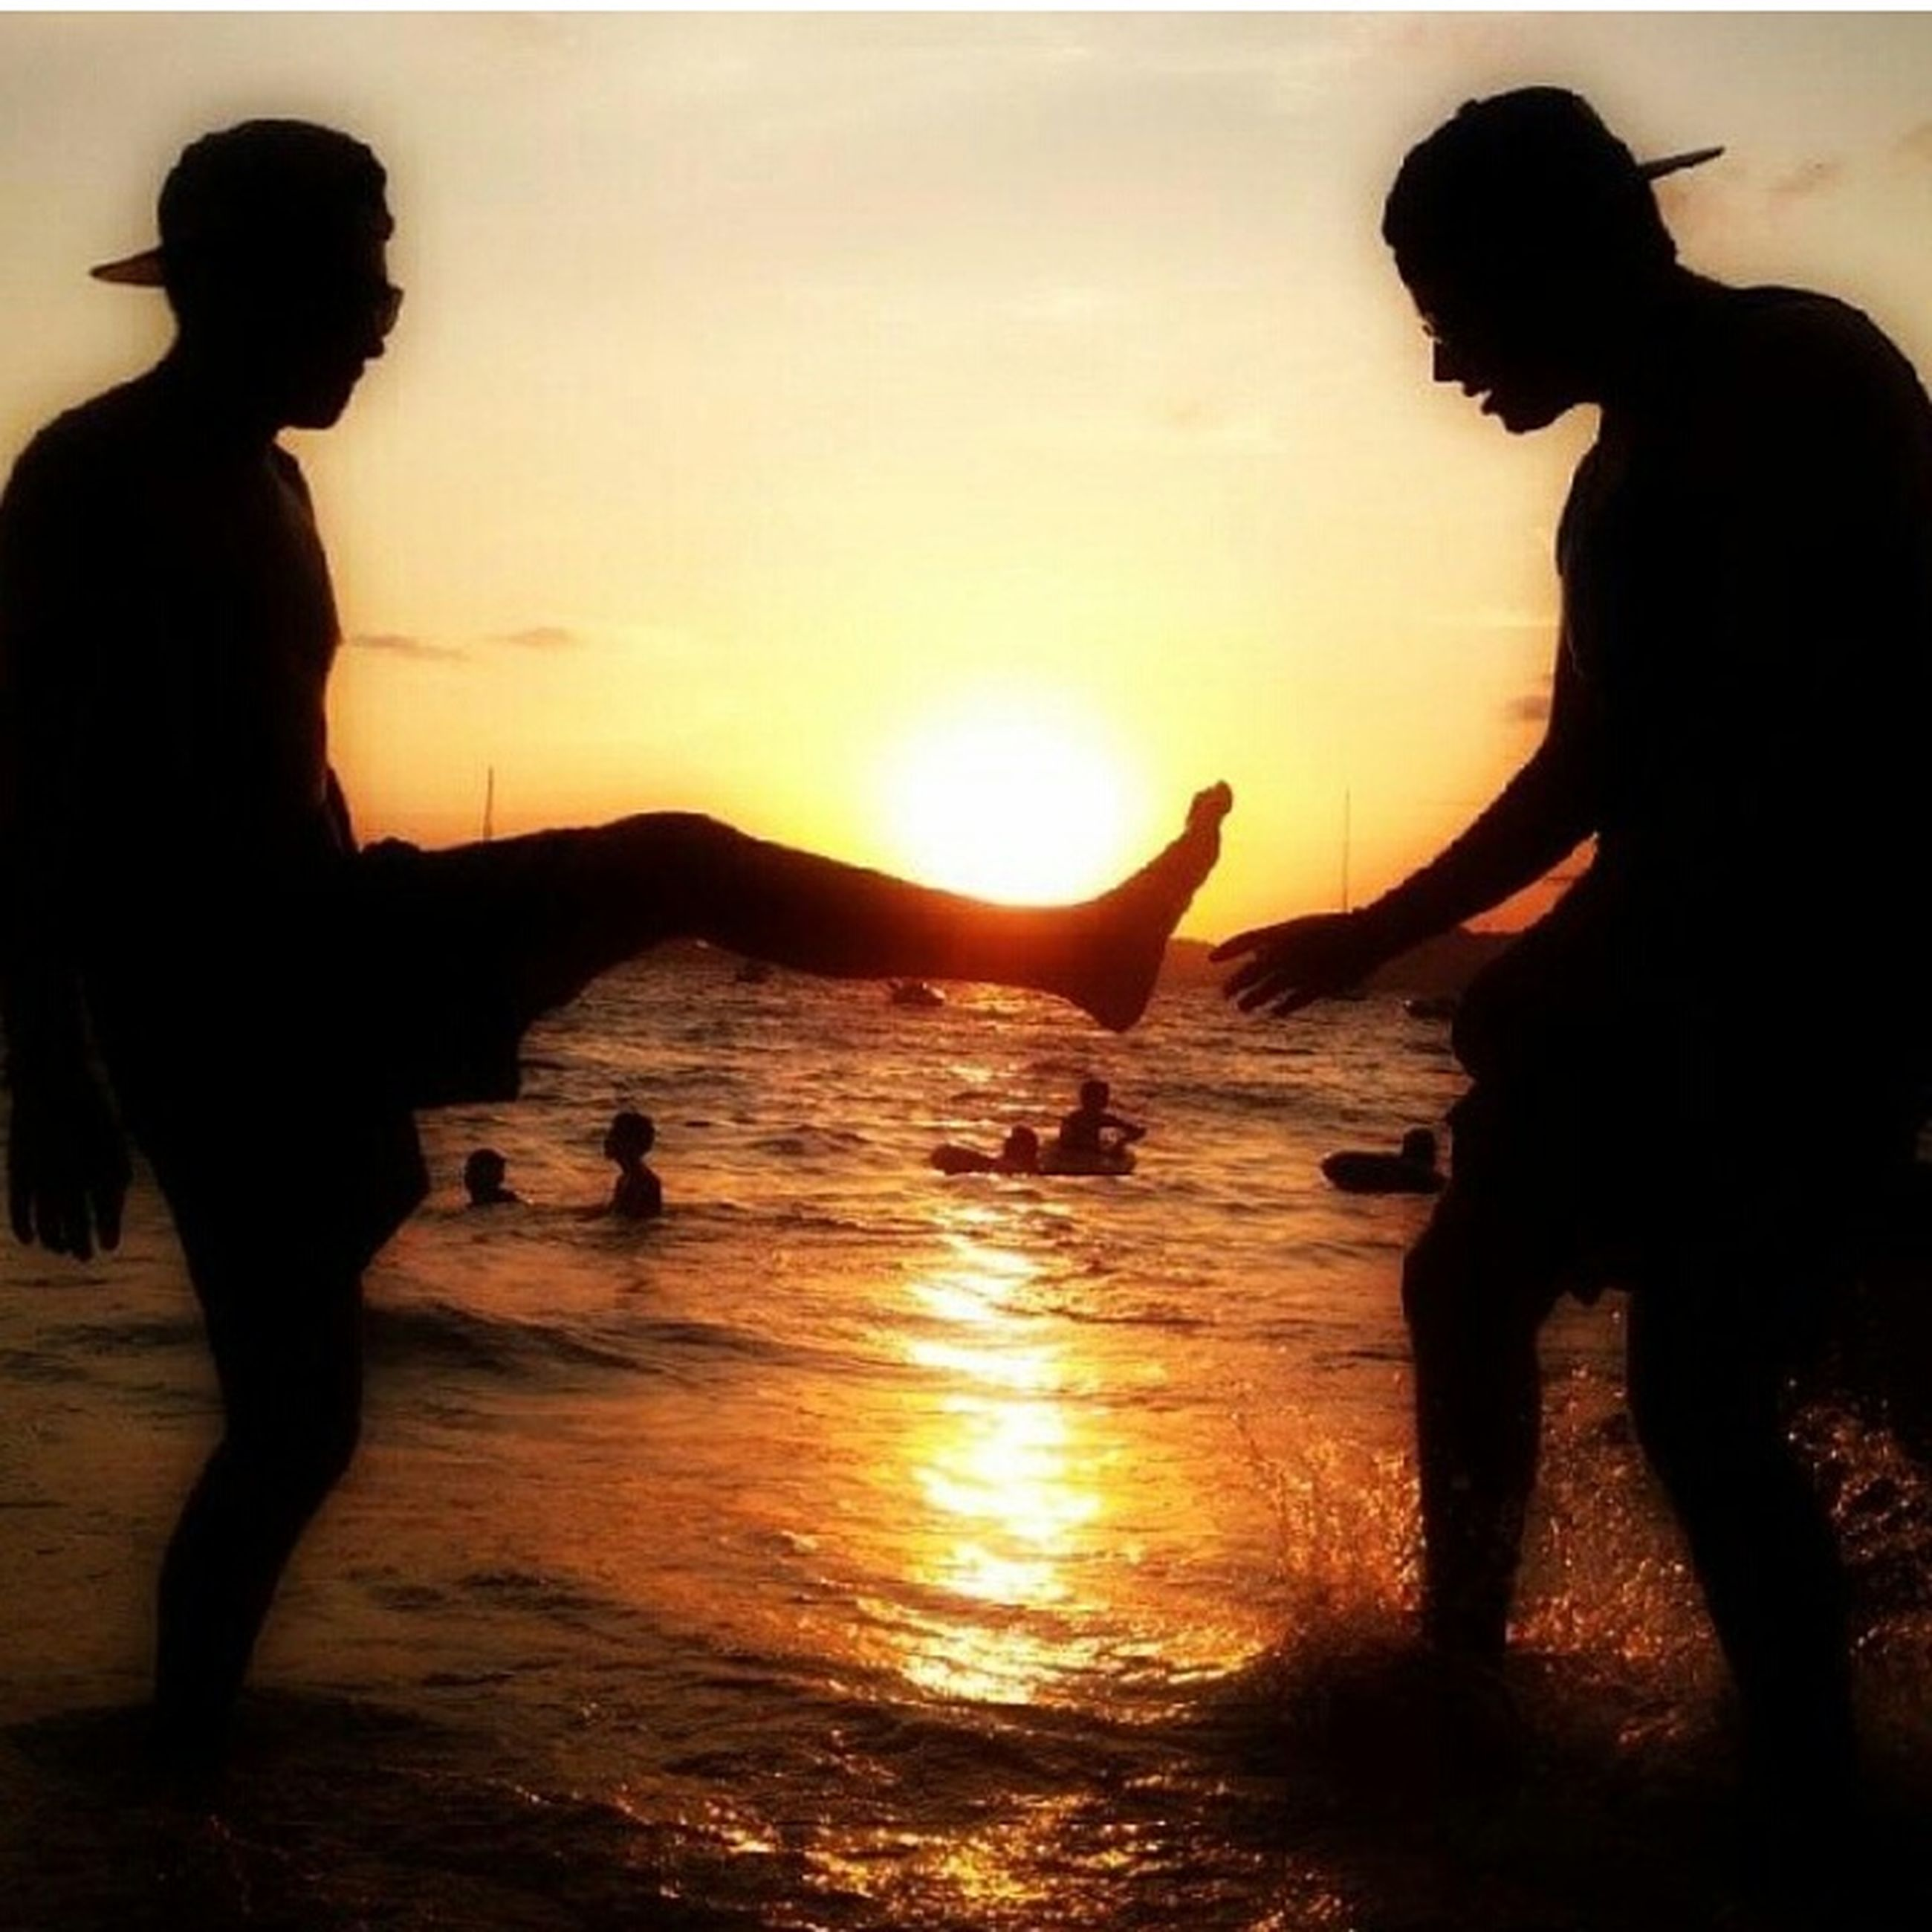 sunset, sun, silhouette, lifestyles, leisure activity, beach, sea, water, orange color, togetherness, person, sunlight, horizon over water, enjoyment, full length, bonding, standing